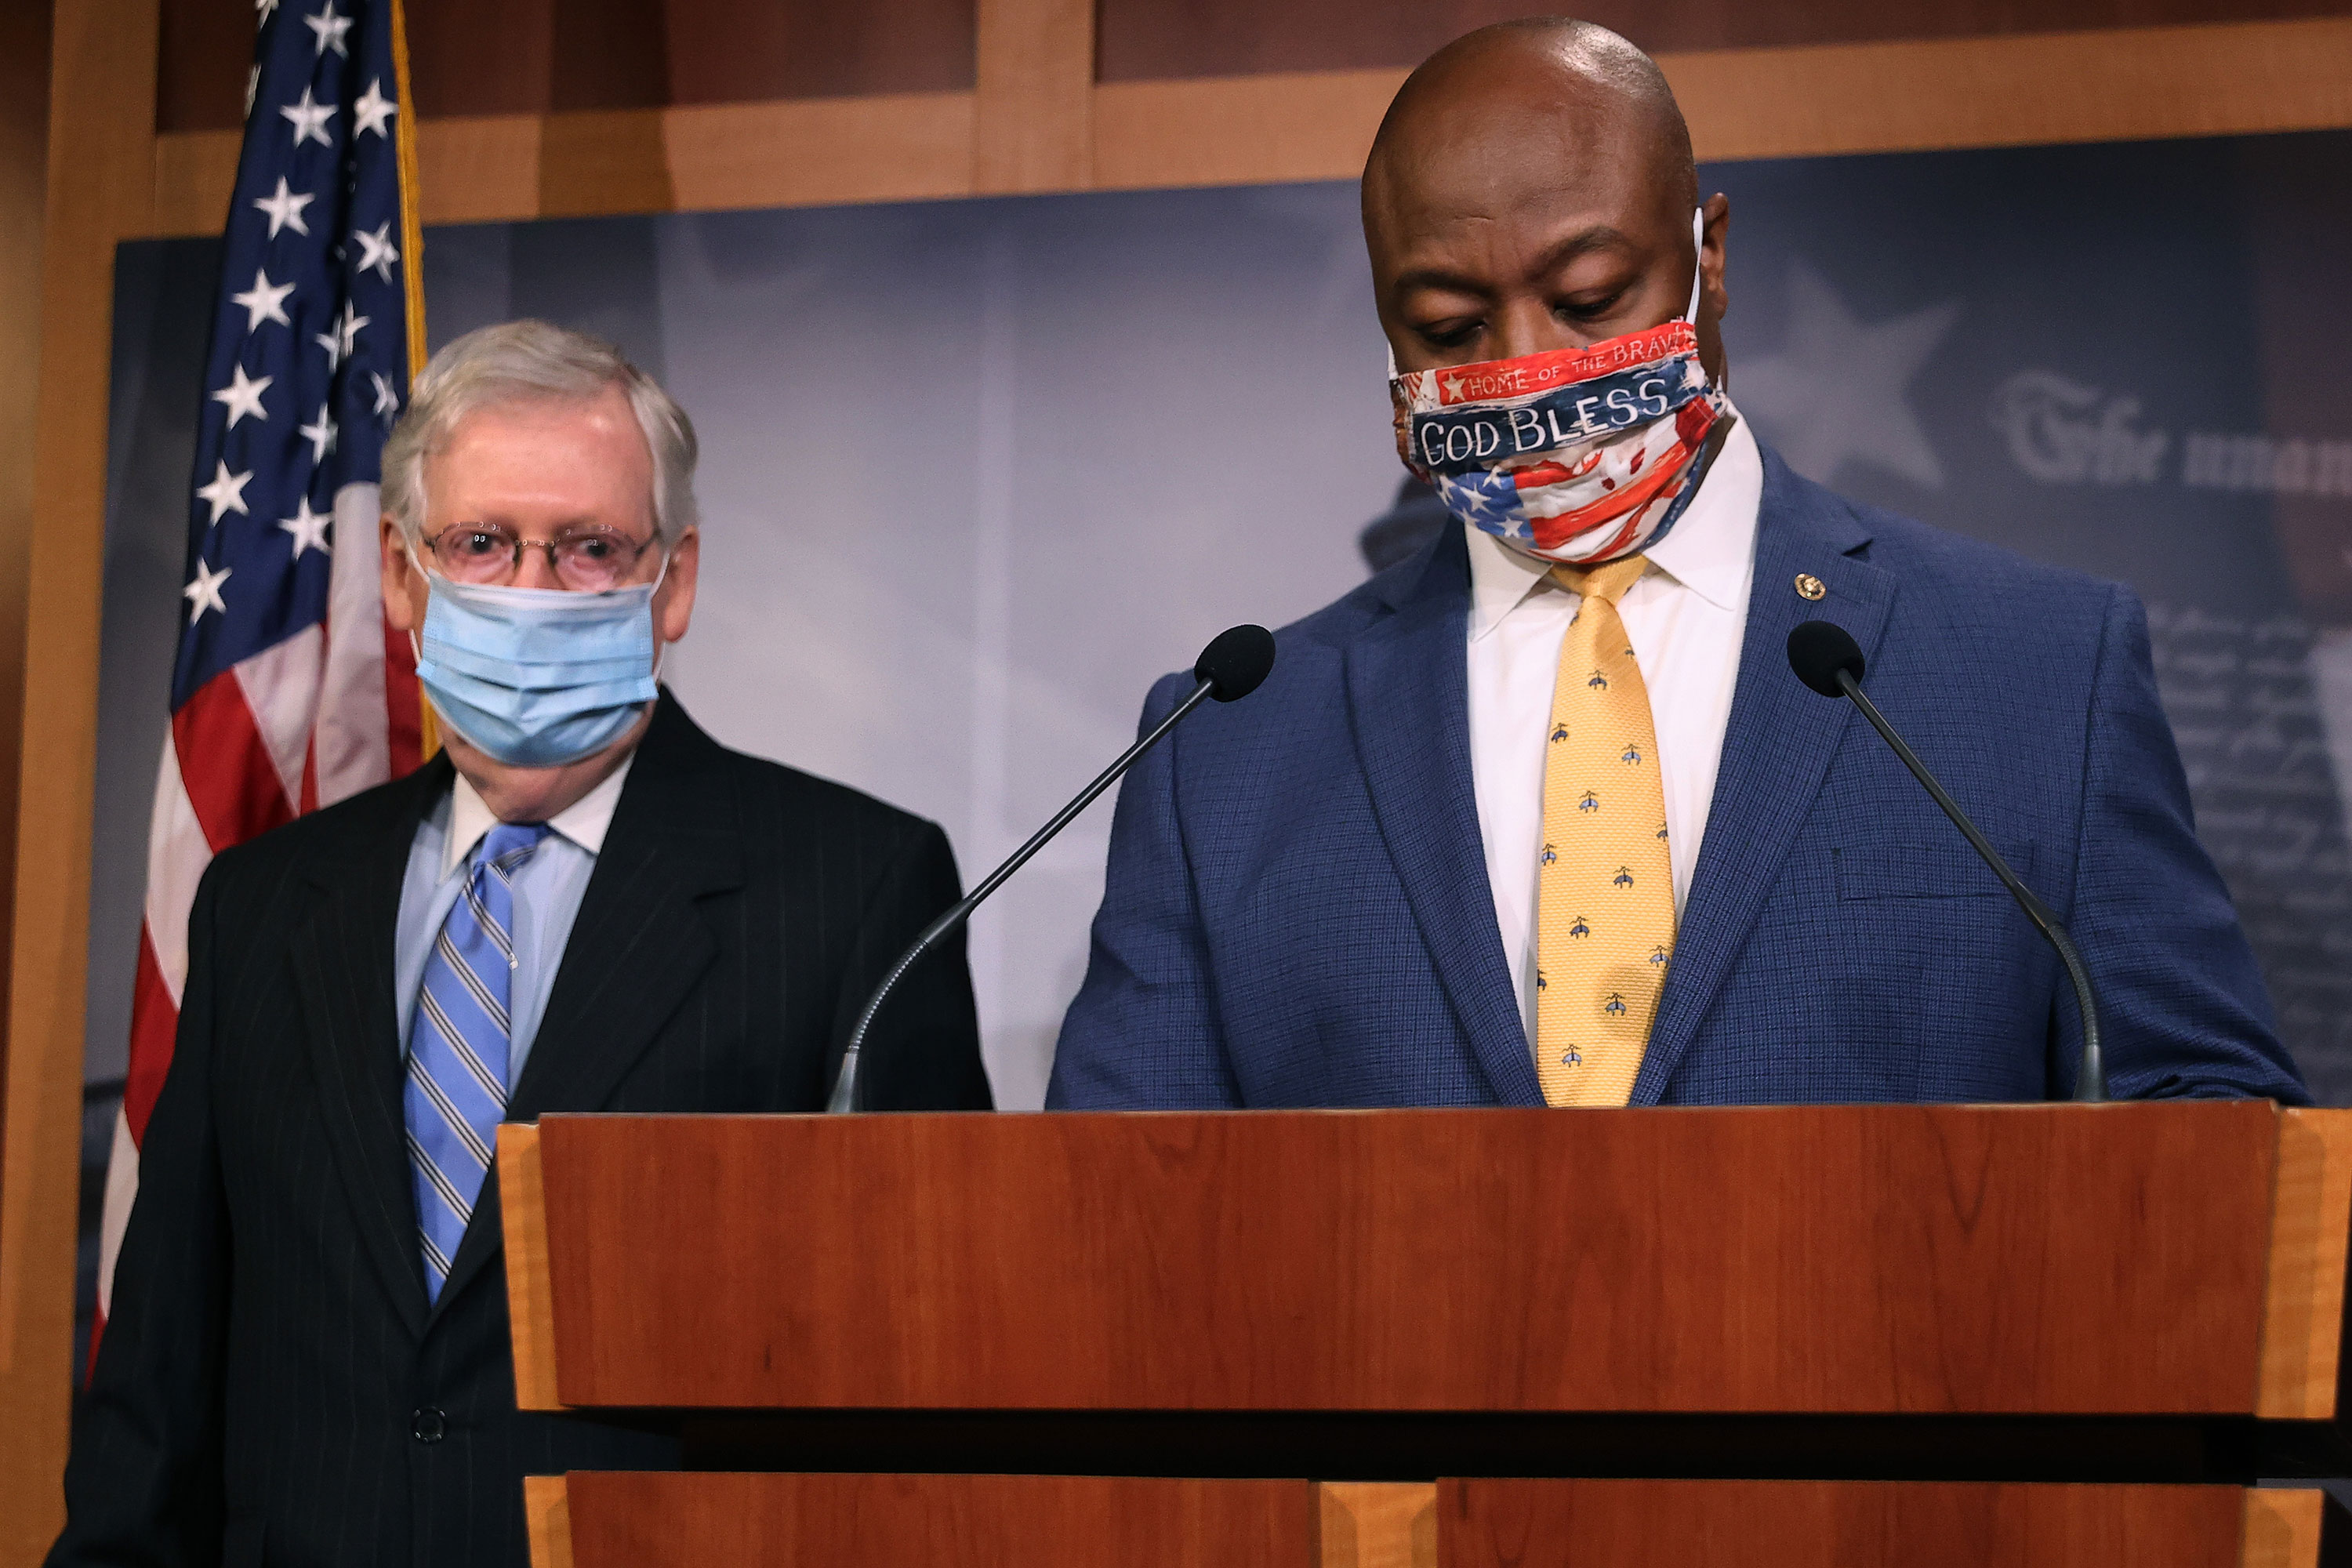 Sen. Tim Scott, right, and Senate Majority Leader Mitch McConnell take the podium for a news conference at the Capitol building in Washington on June 17.